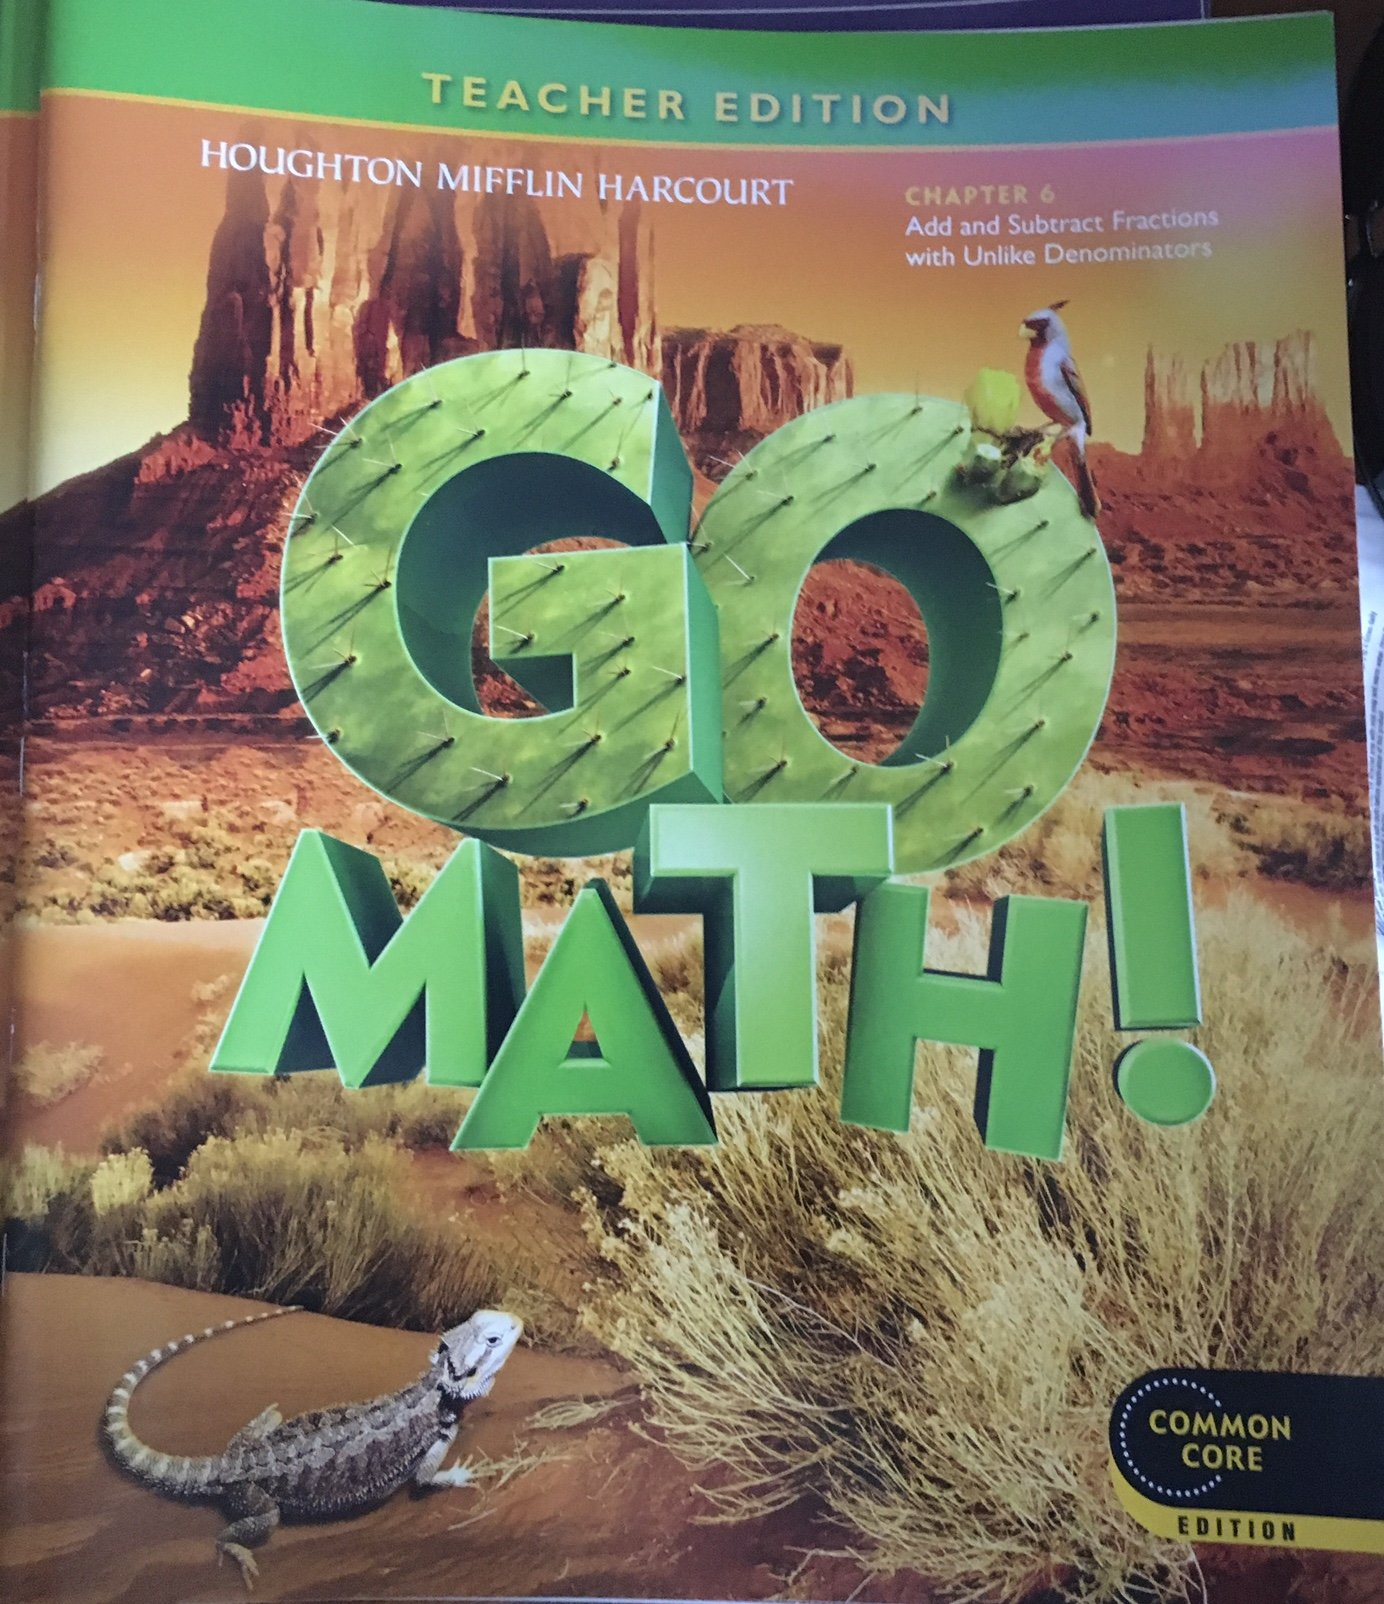 Amazon.com: Go Math! Grade 5 Teacher Edition Chapter 6: Add and ...